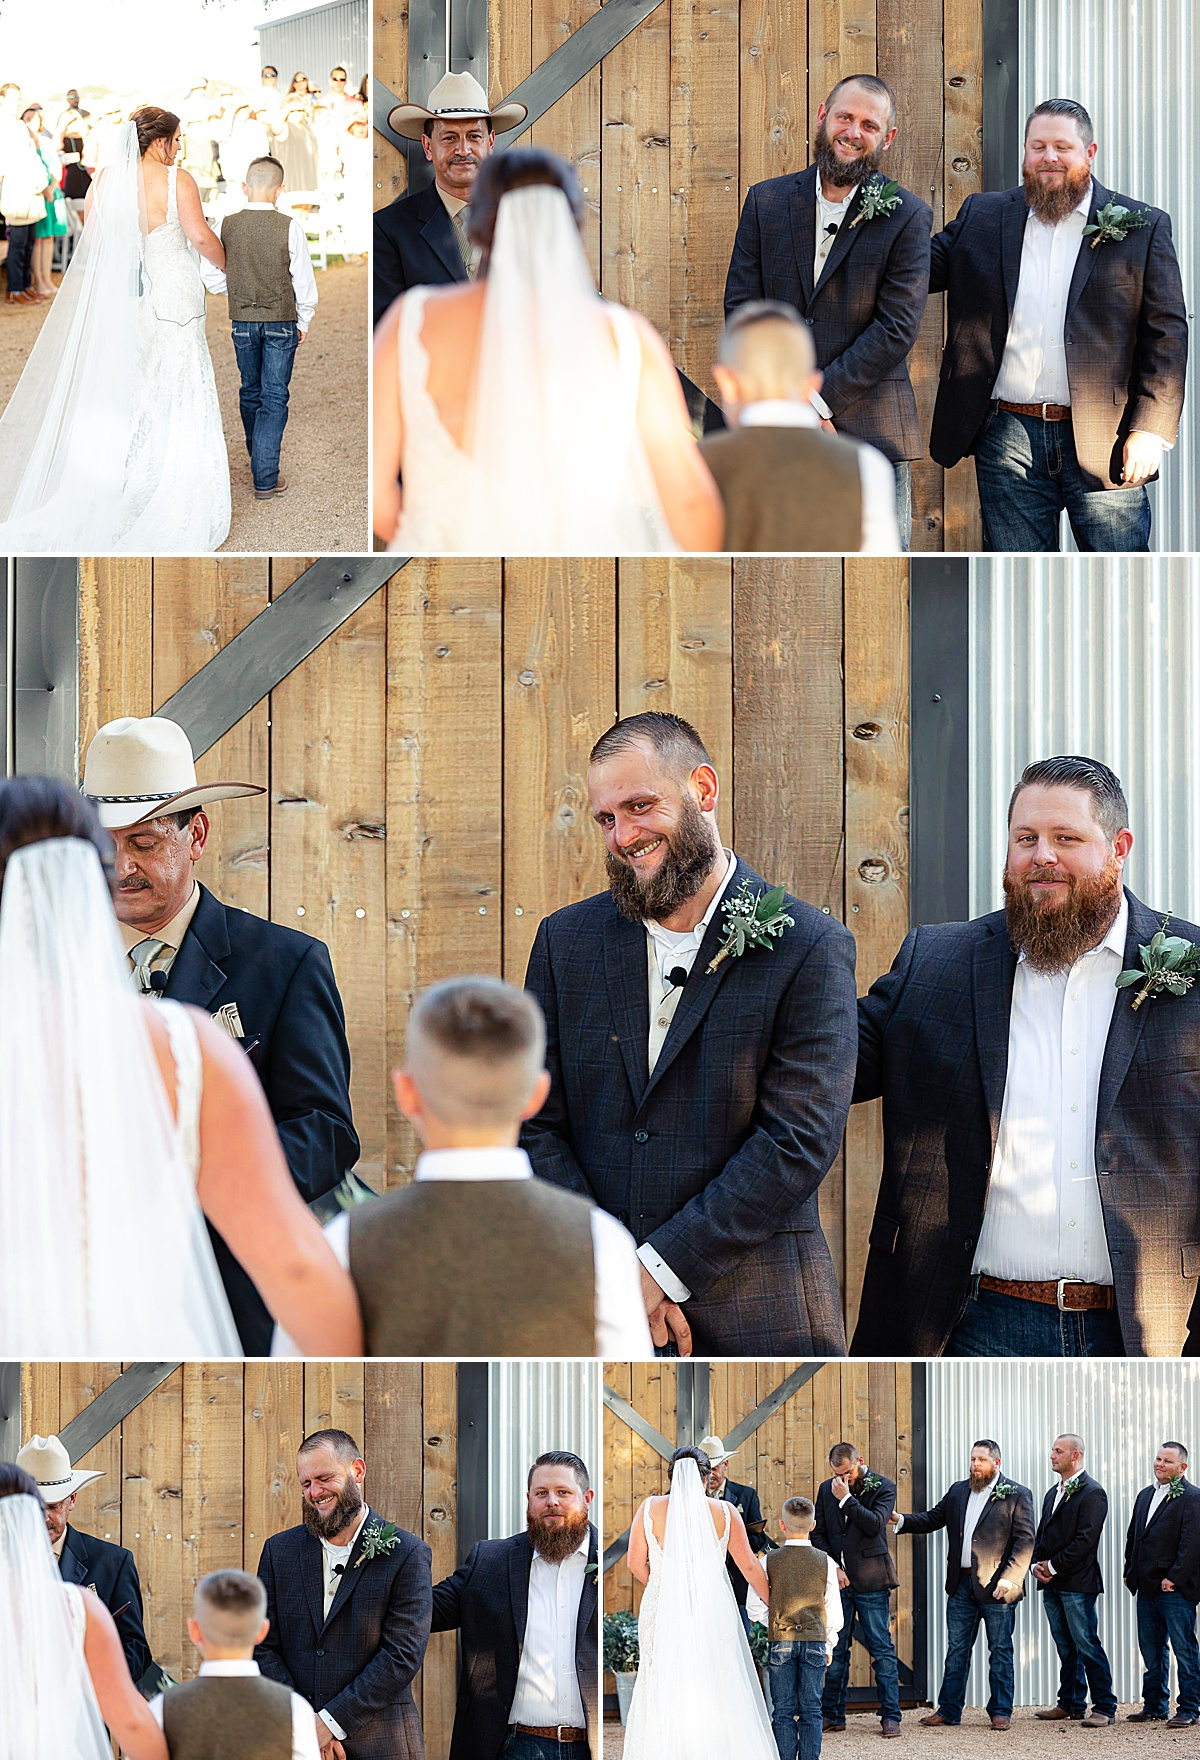 Rustic-Texas-Wedding-Hollow-Creek-Ranch-Carly-Barton-Photography_0114.jpg